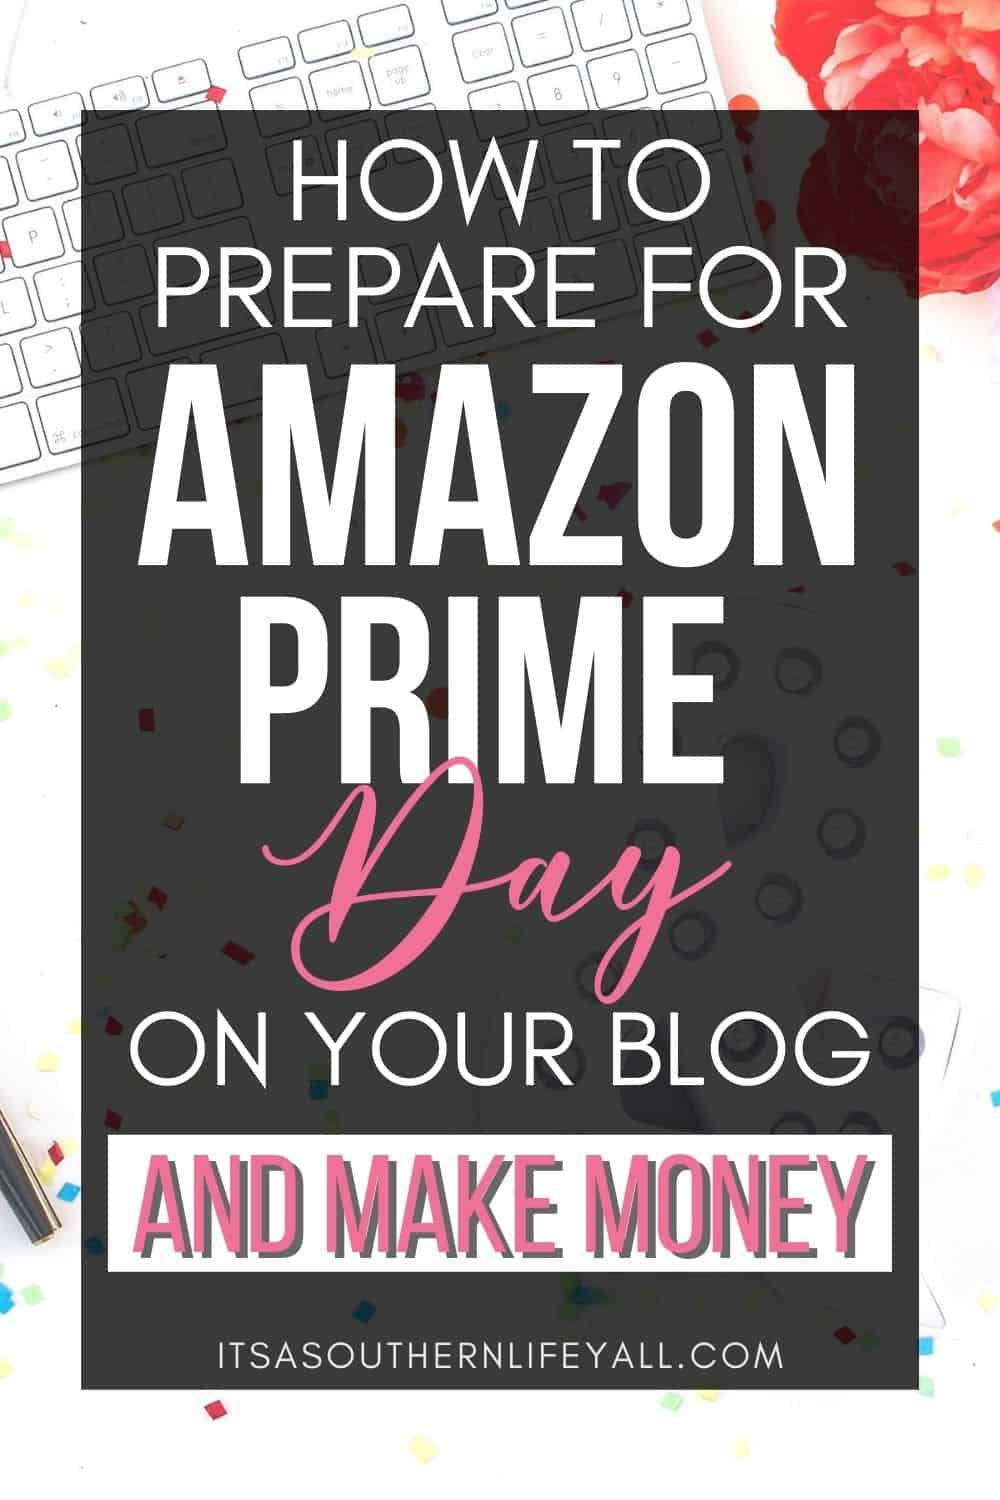 """Text overlay """"How to prepare for Amazon Prime Day on your blog and make money."""""""